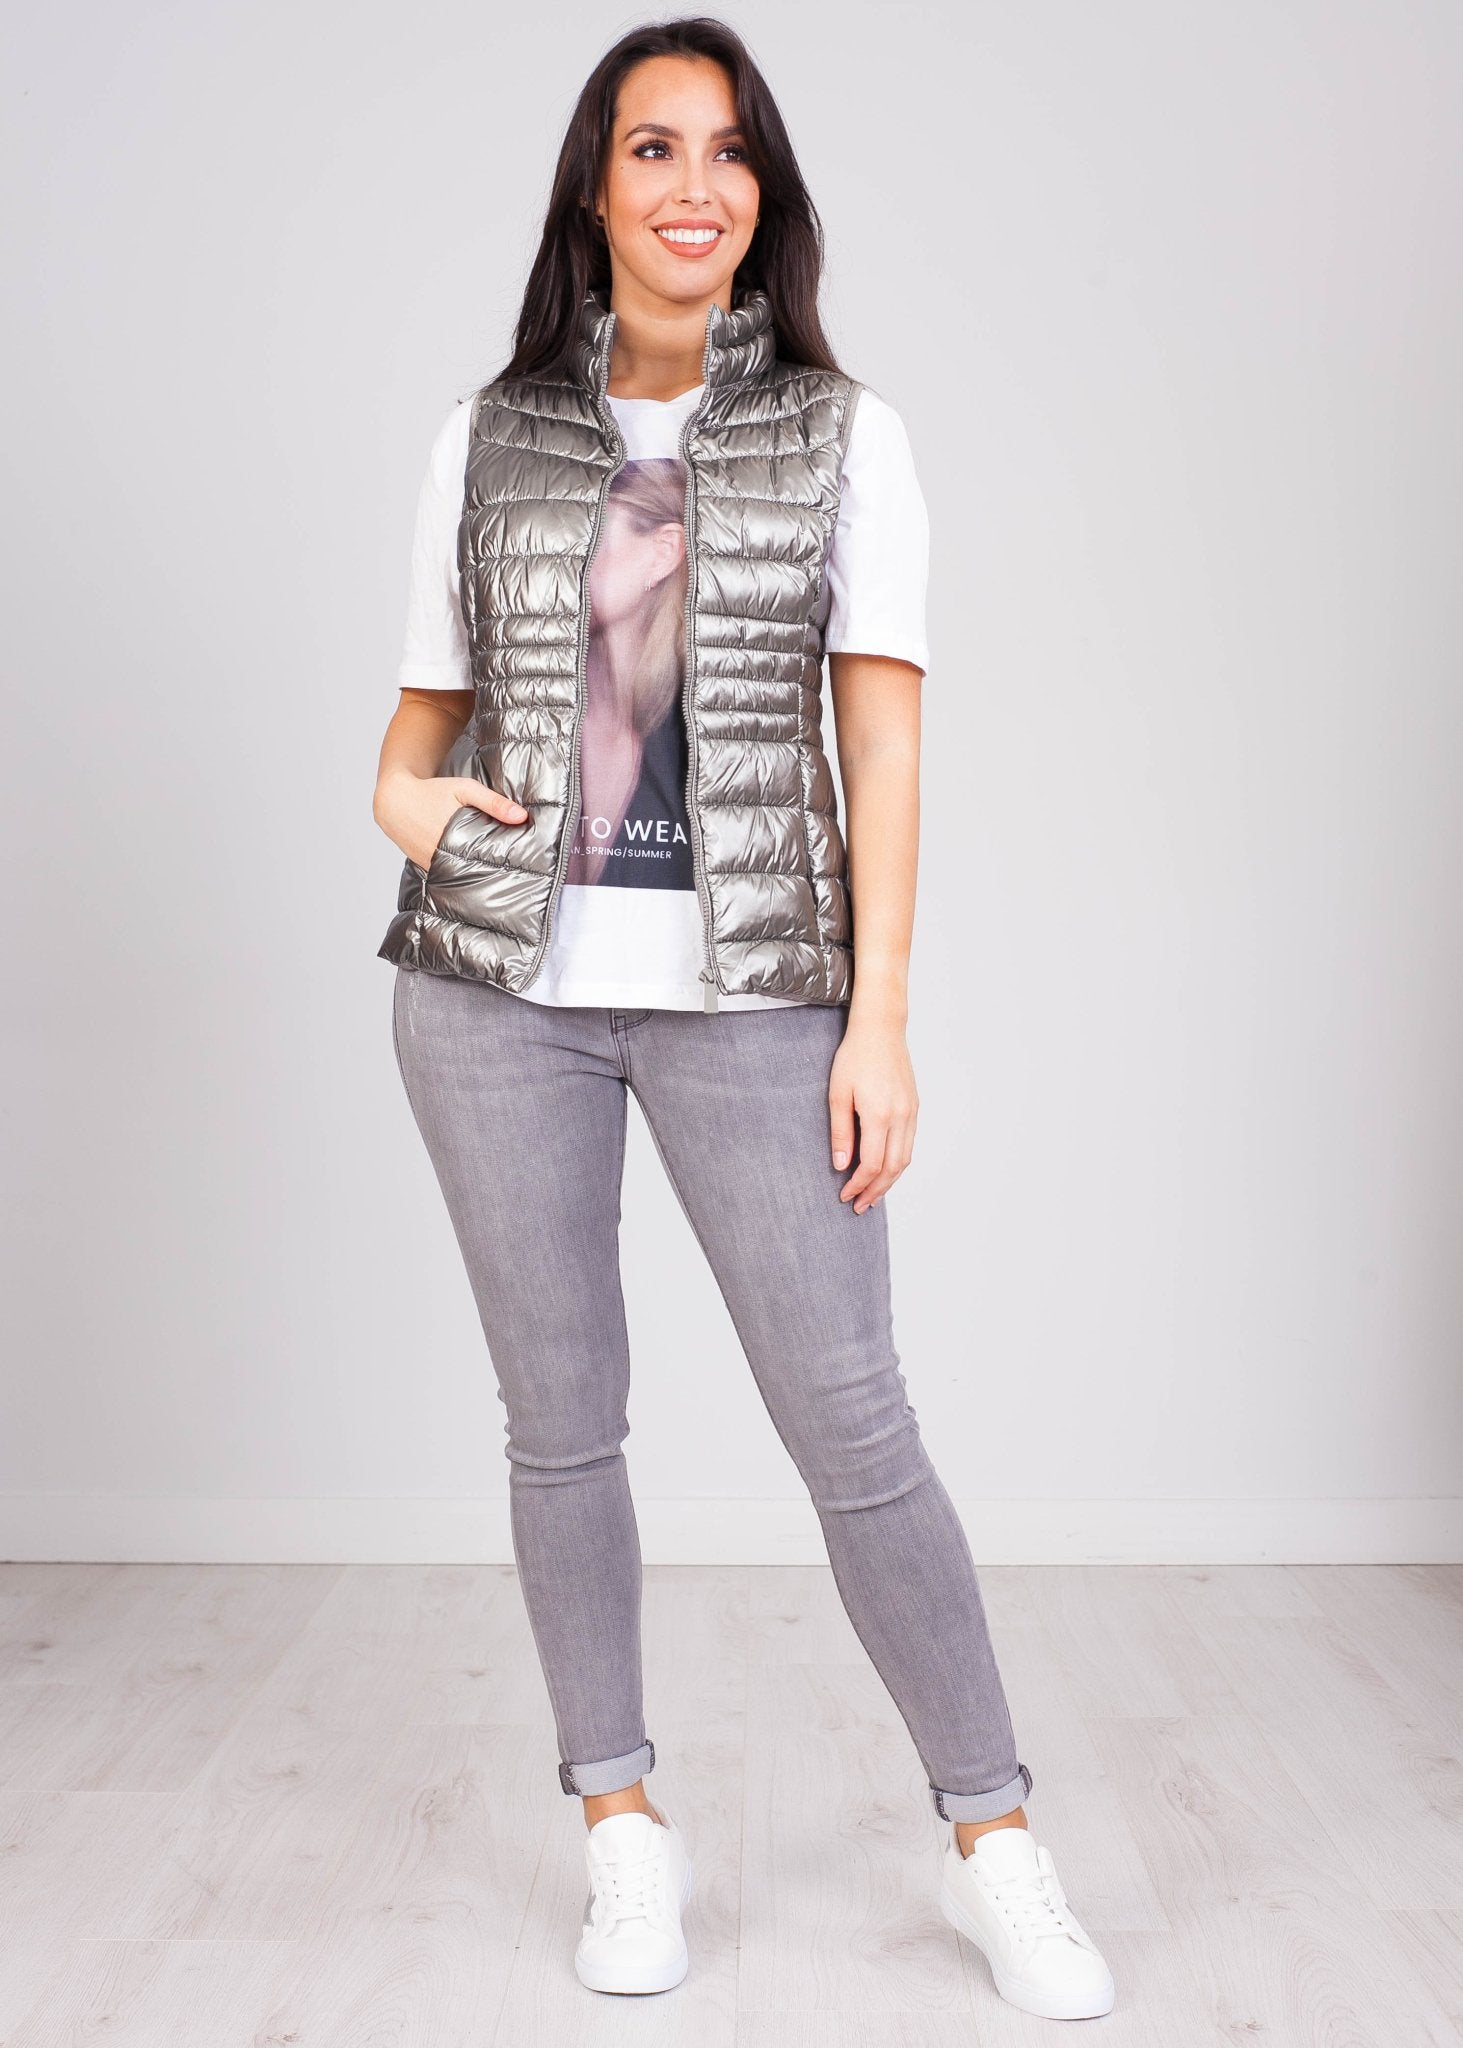 Priya Silver Shimmer Gilet - The Walk in Wardrobe